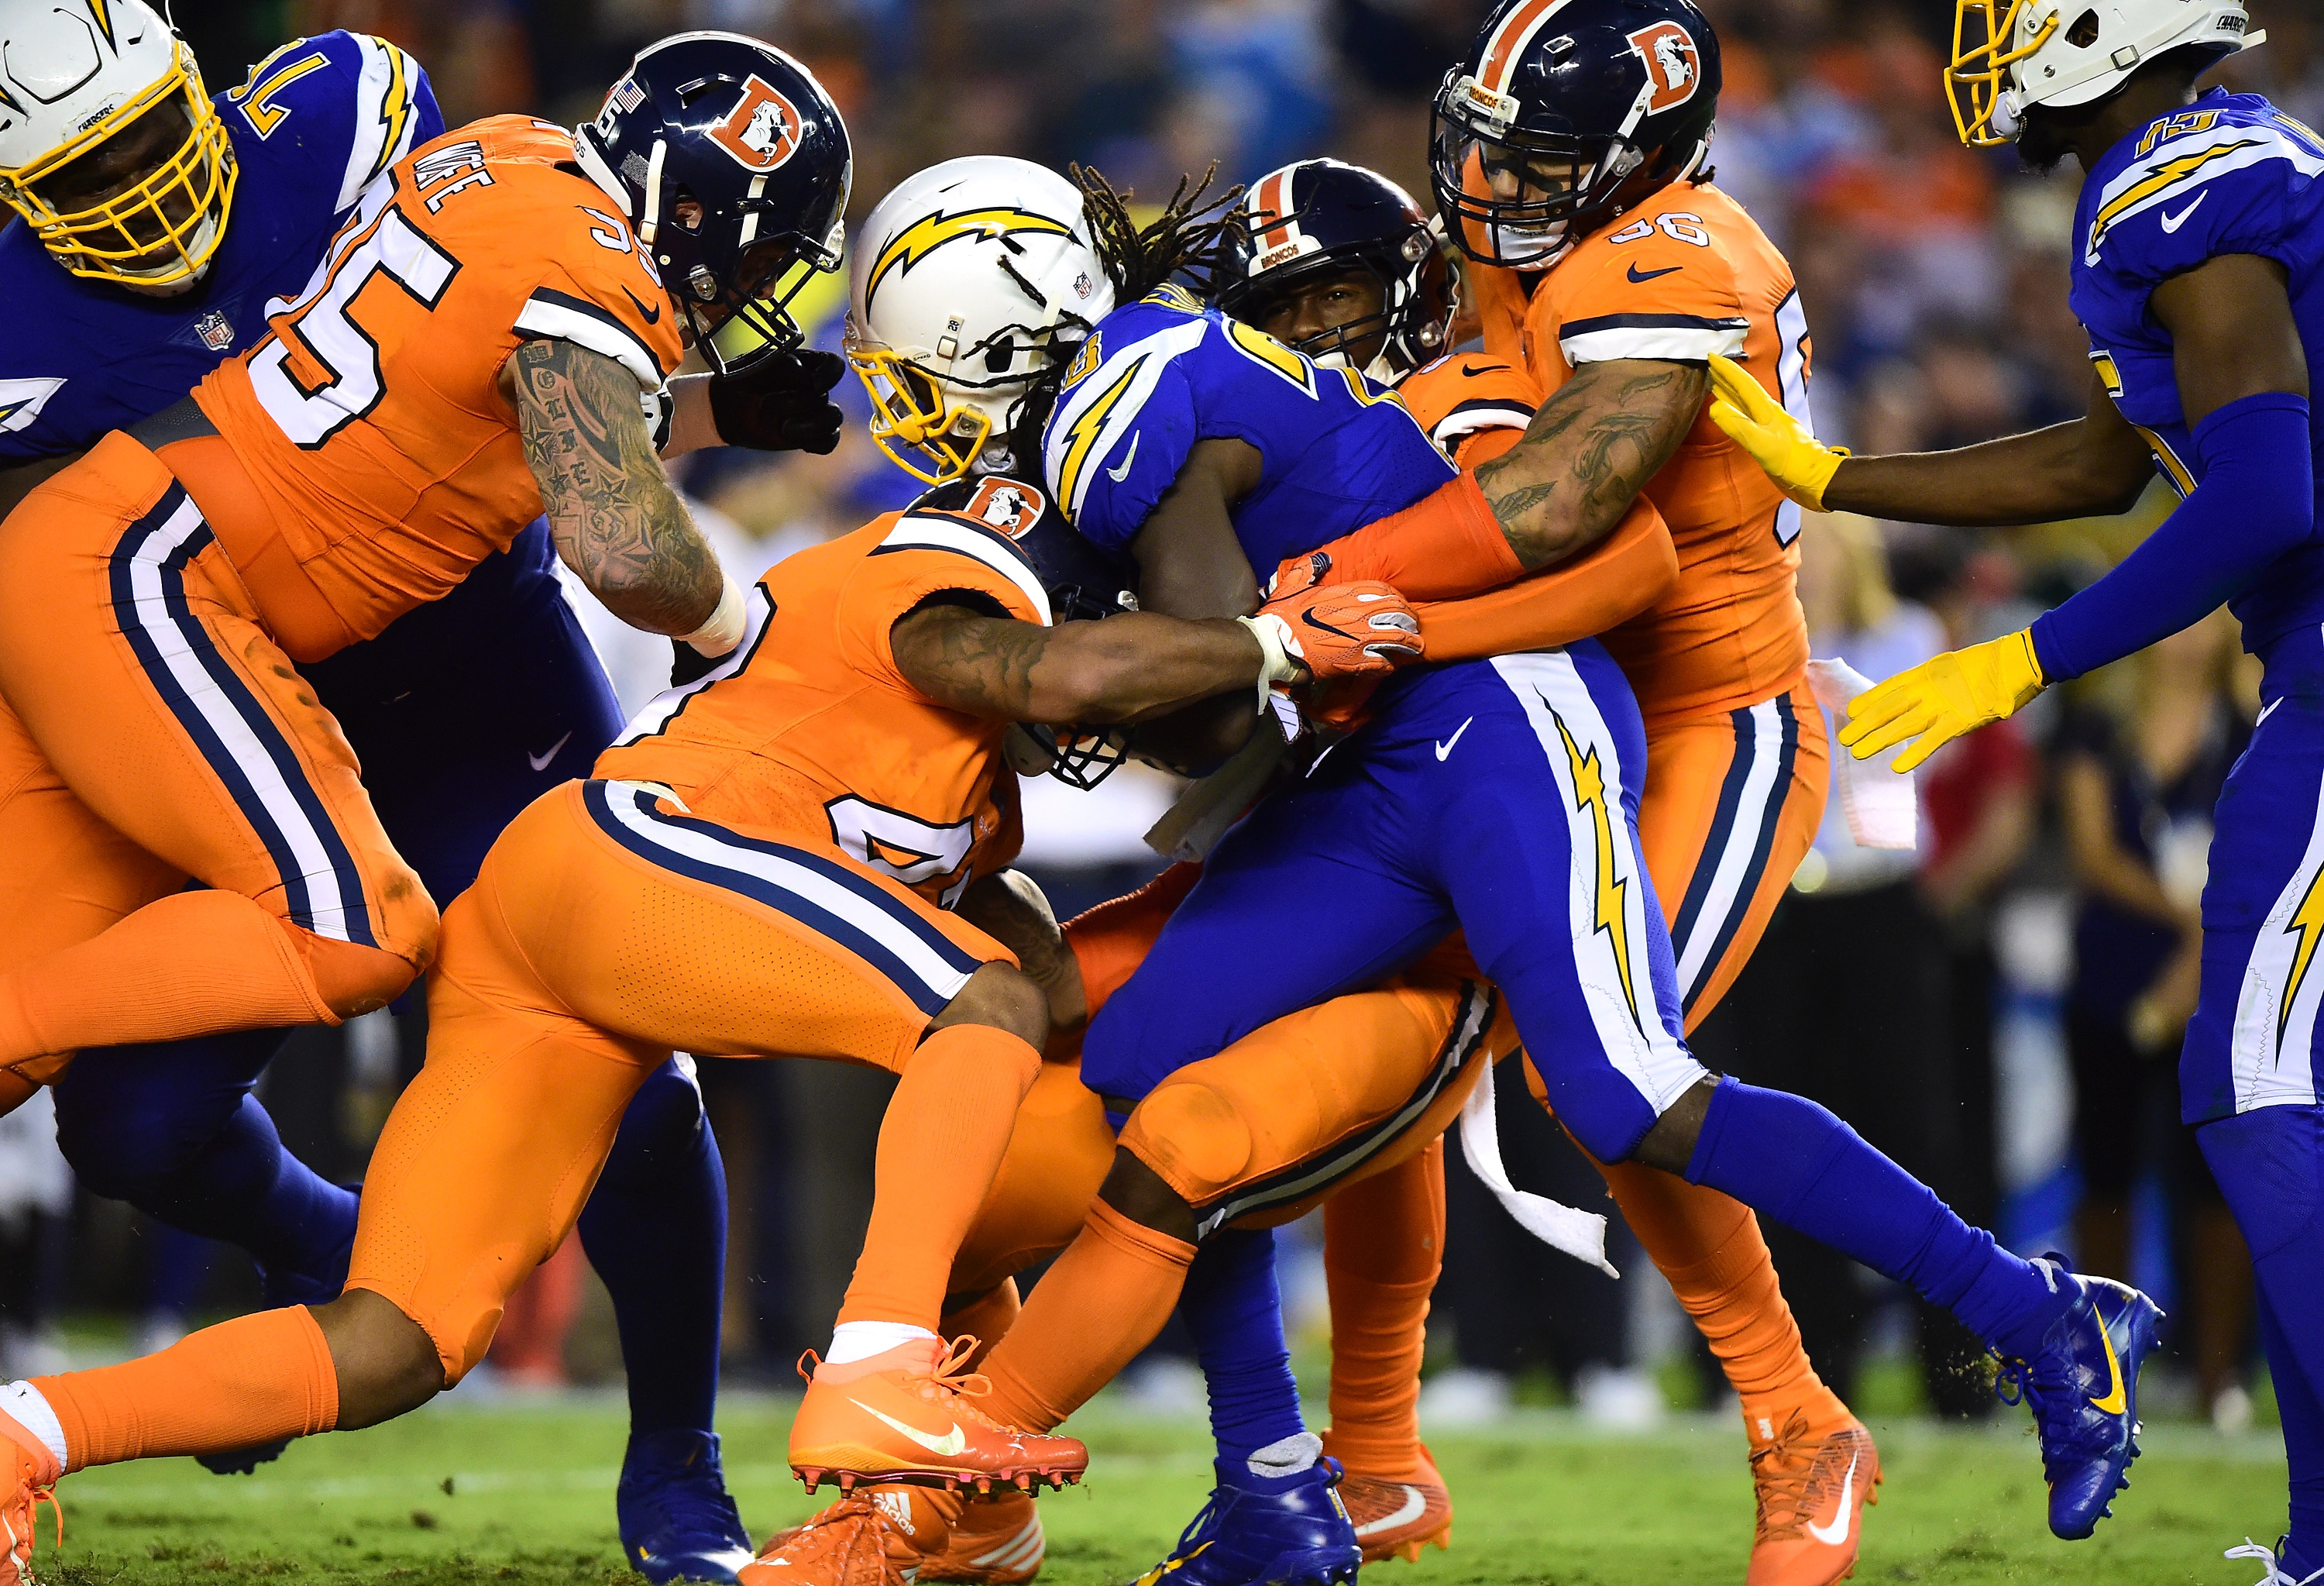 Von Miller #58 of the Denver Broncos tackles Melvin Gordon #28 of the San Diego Chargers during the second quarter at Qualcomm Stadium on Oct. 13, 2016 in San Diego, California. (Photo by Harry How/Getty Images)